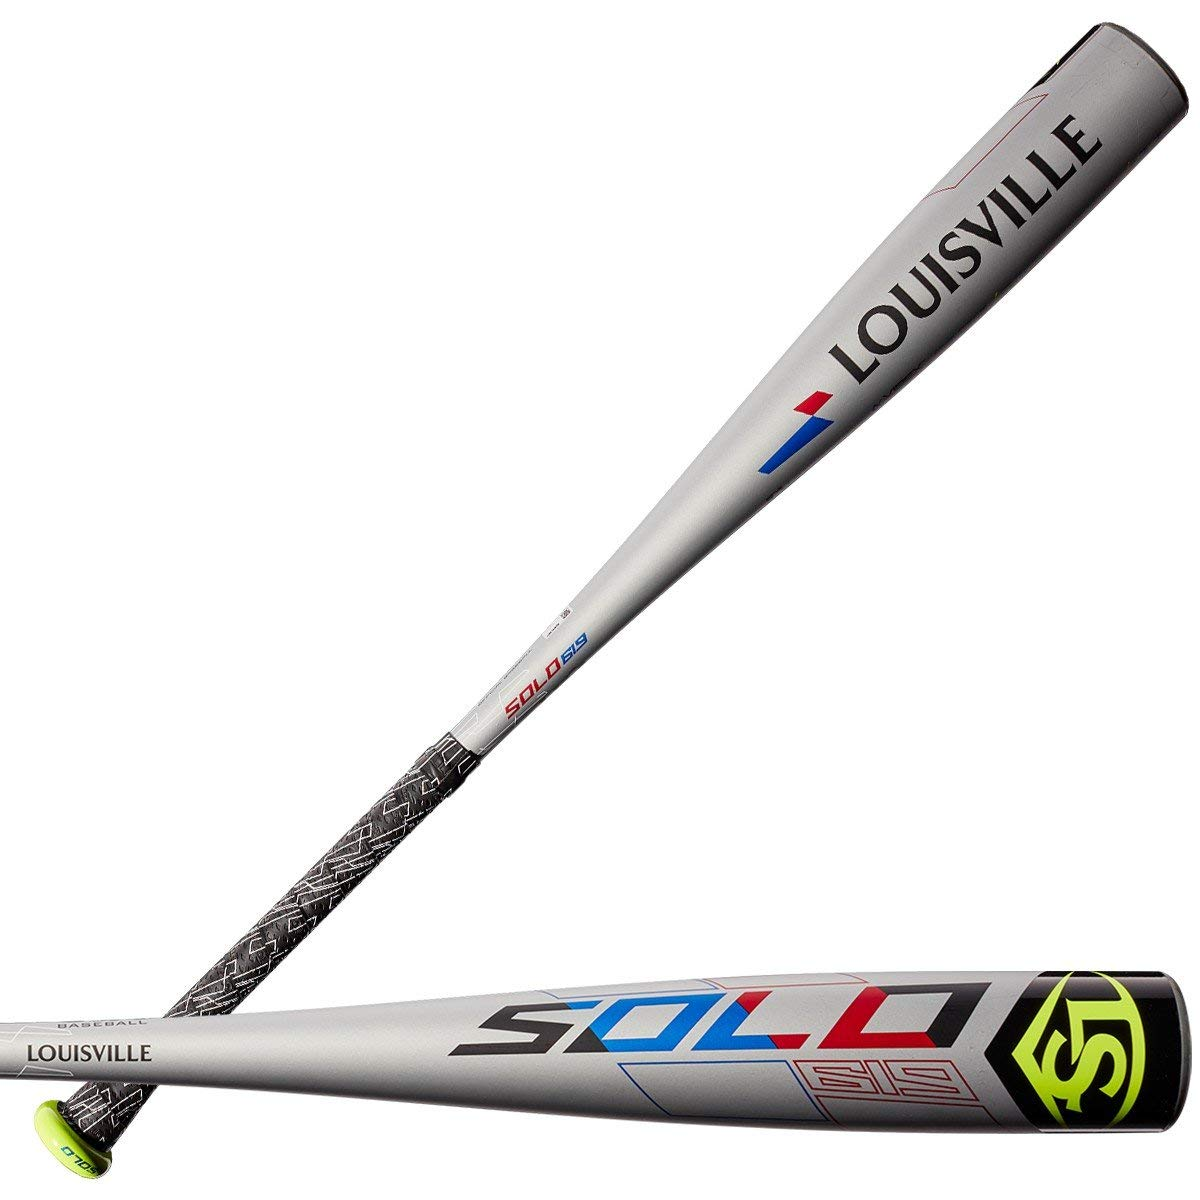 louisville-slugger-2019-solo-619-11-usa-baseball-bat-28-inch-17-oz WTLUBS619B1128 Louisville 887768730017 Meets USA bat standard; approved for play in little League Baseball